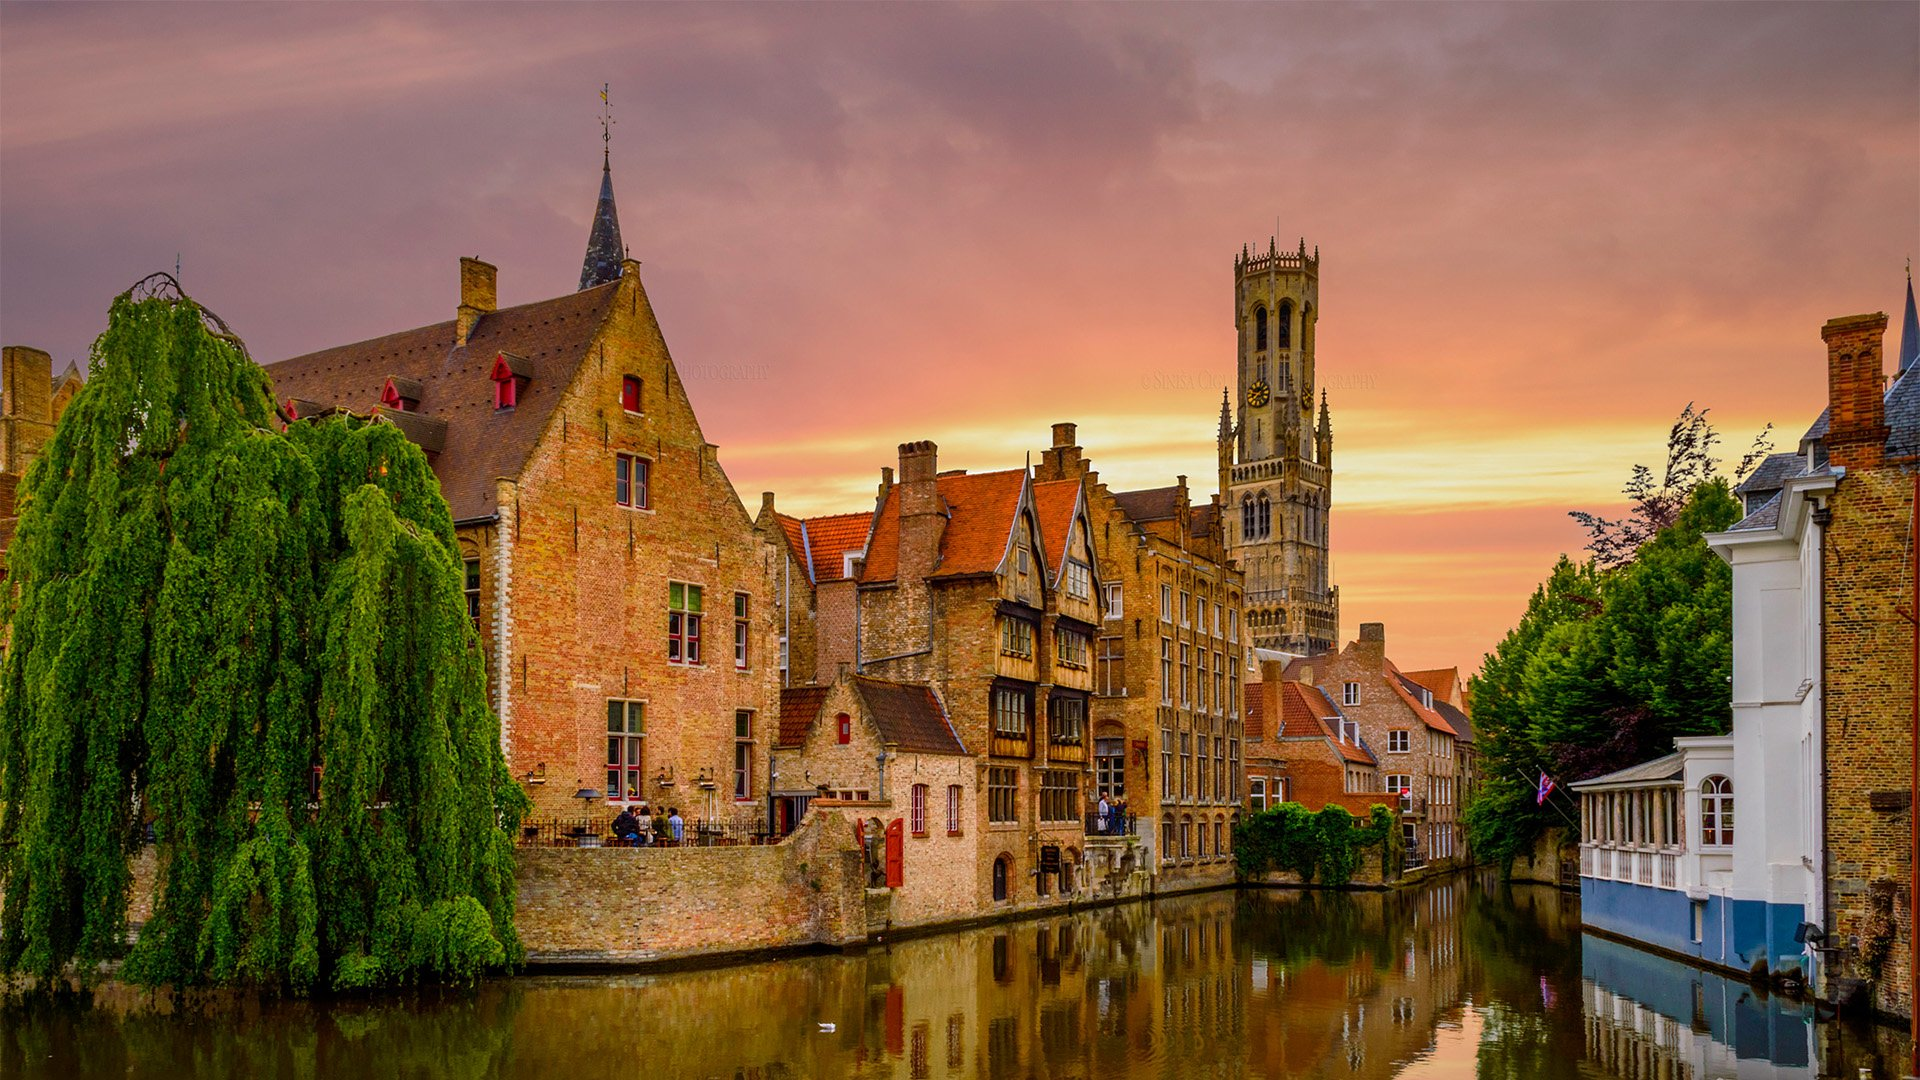 Buildings and Church along a Canal in Bruges Belgium HD Wallpaper 1920x1080